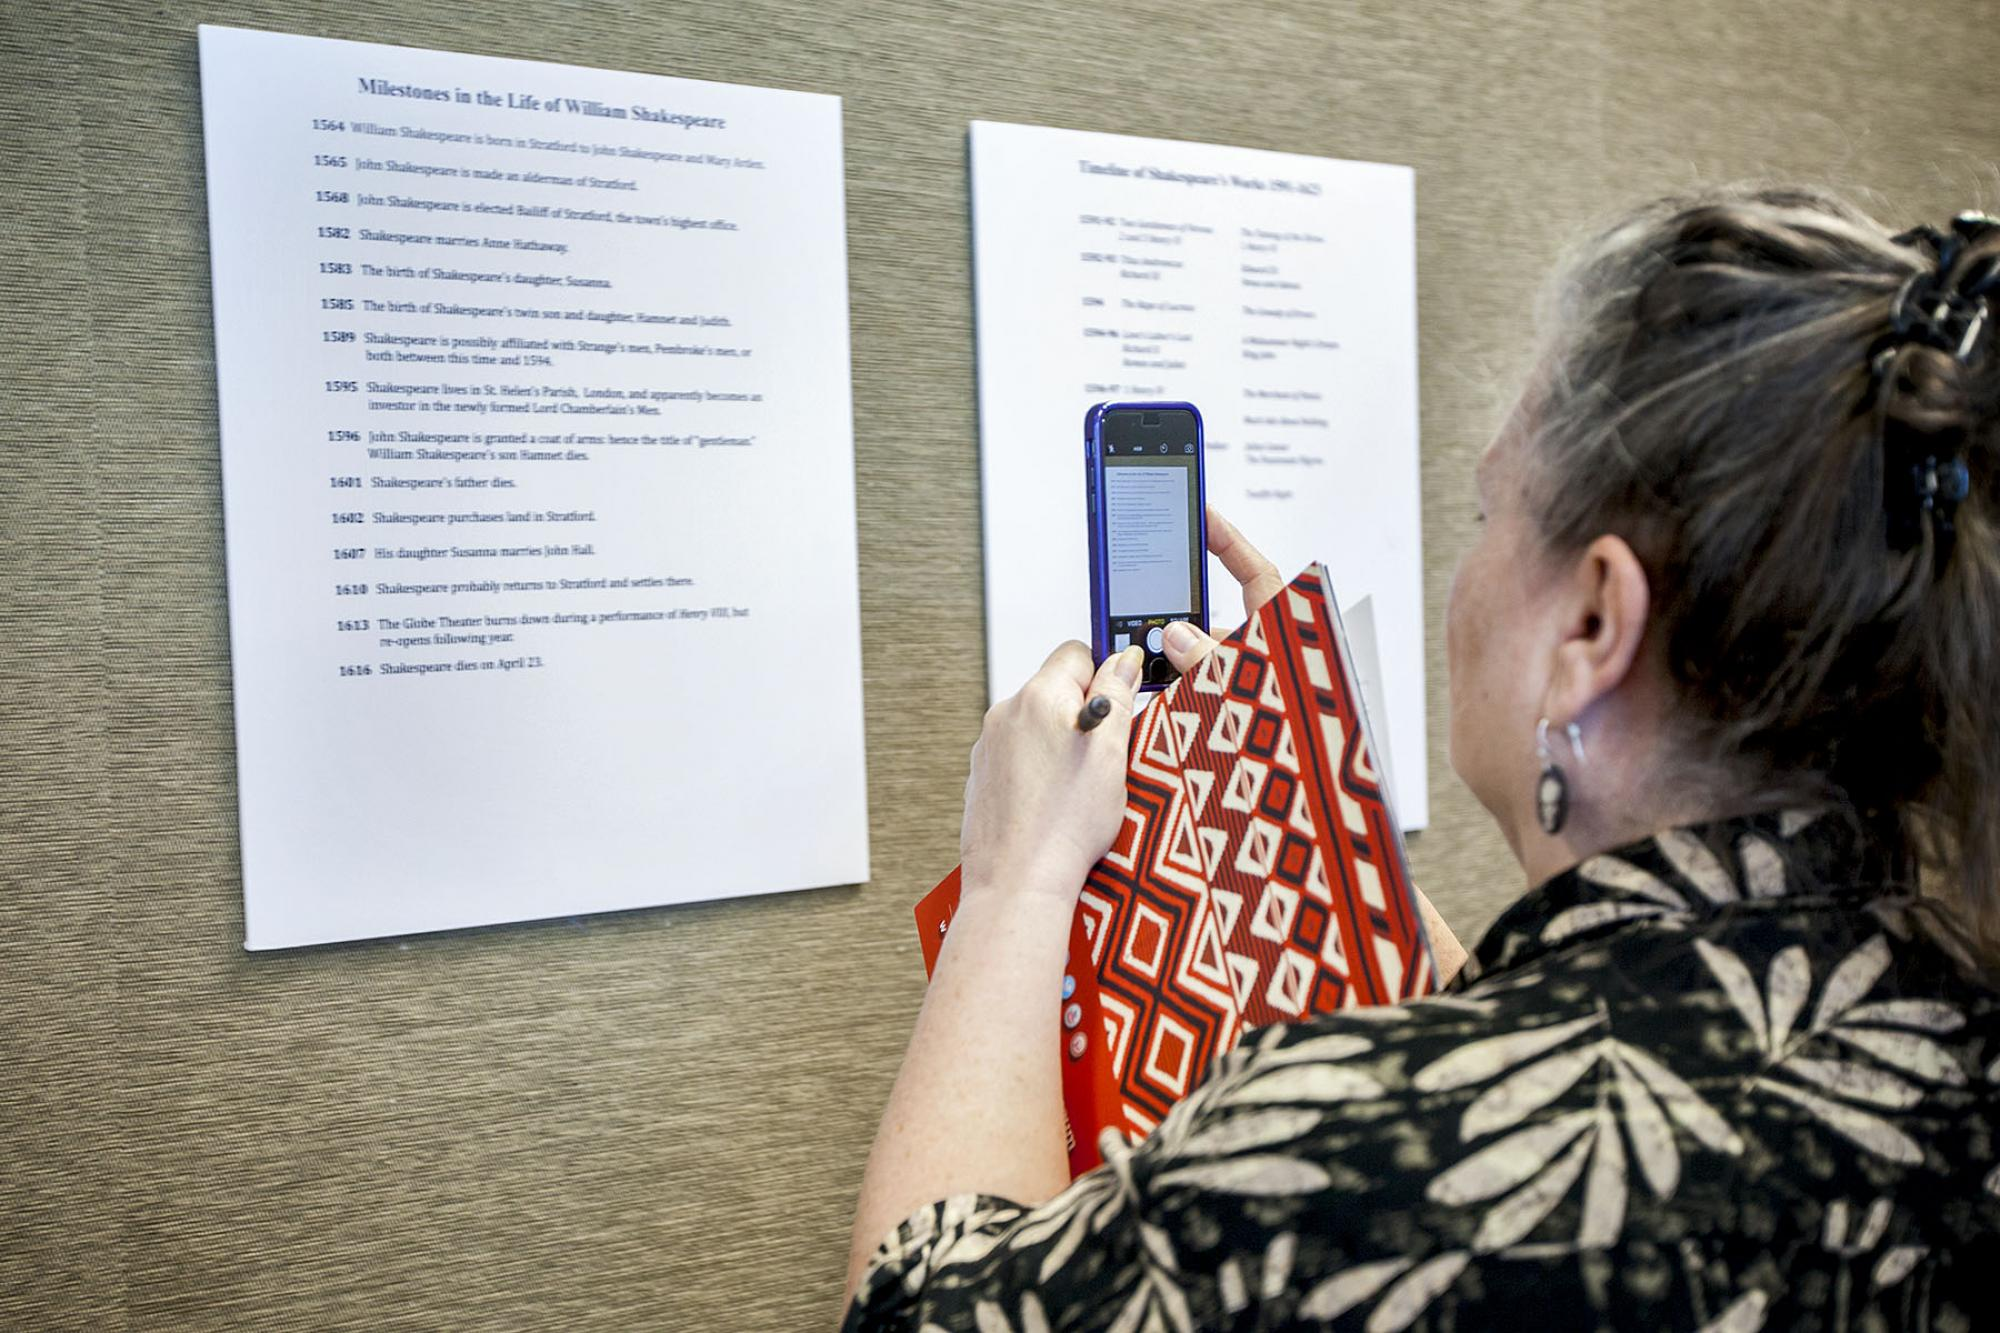 Nicki Navarro, an English teacher from Sahuarita High School, photographs a chronology of milestones in William Shakespeare's life. The timeline is part of the Shakespeare and Elizebathan Culture exhibit at UA Library Special Collections that will be on d